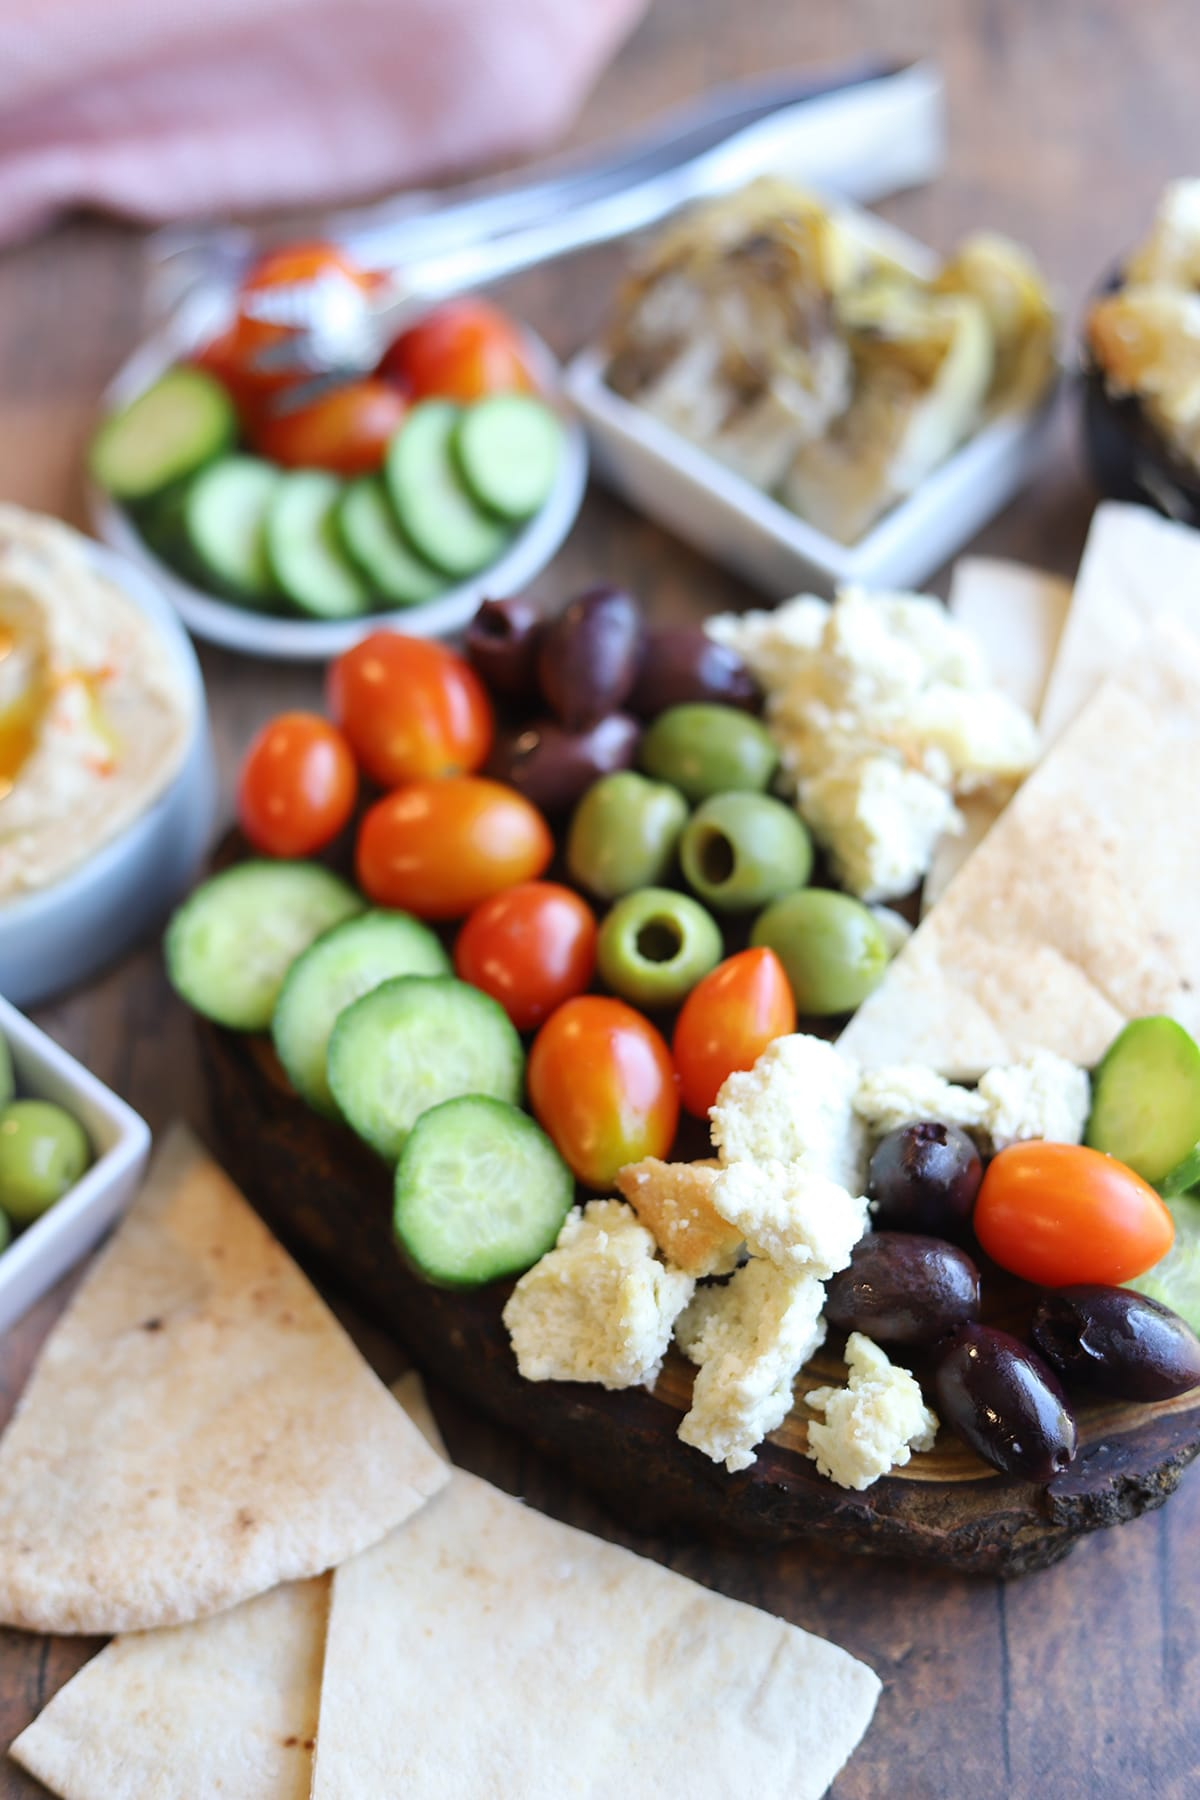 Mezze platter with cucumbers, tomatoes, vegan feta, and hummus.